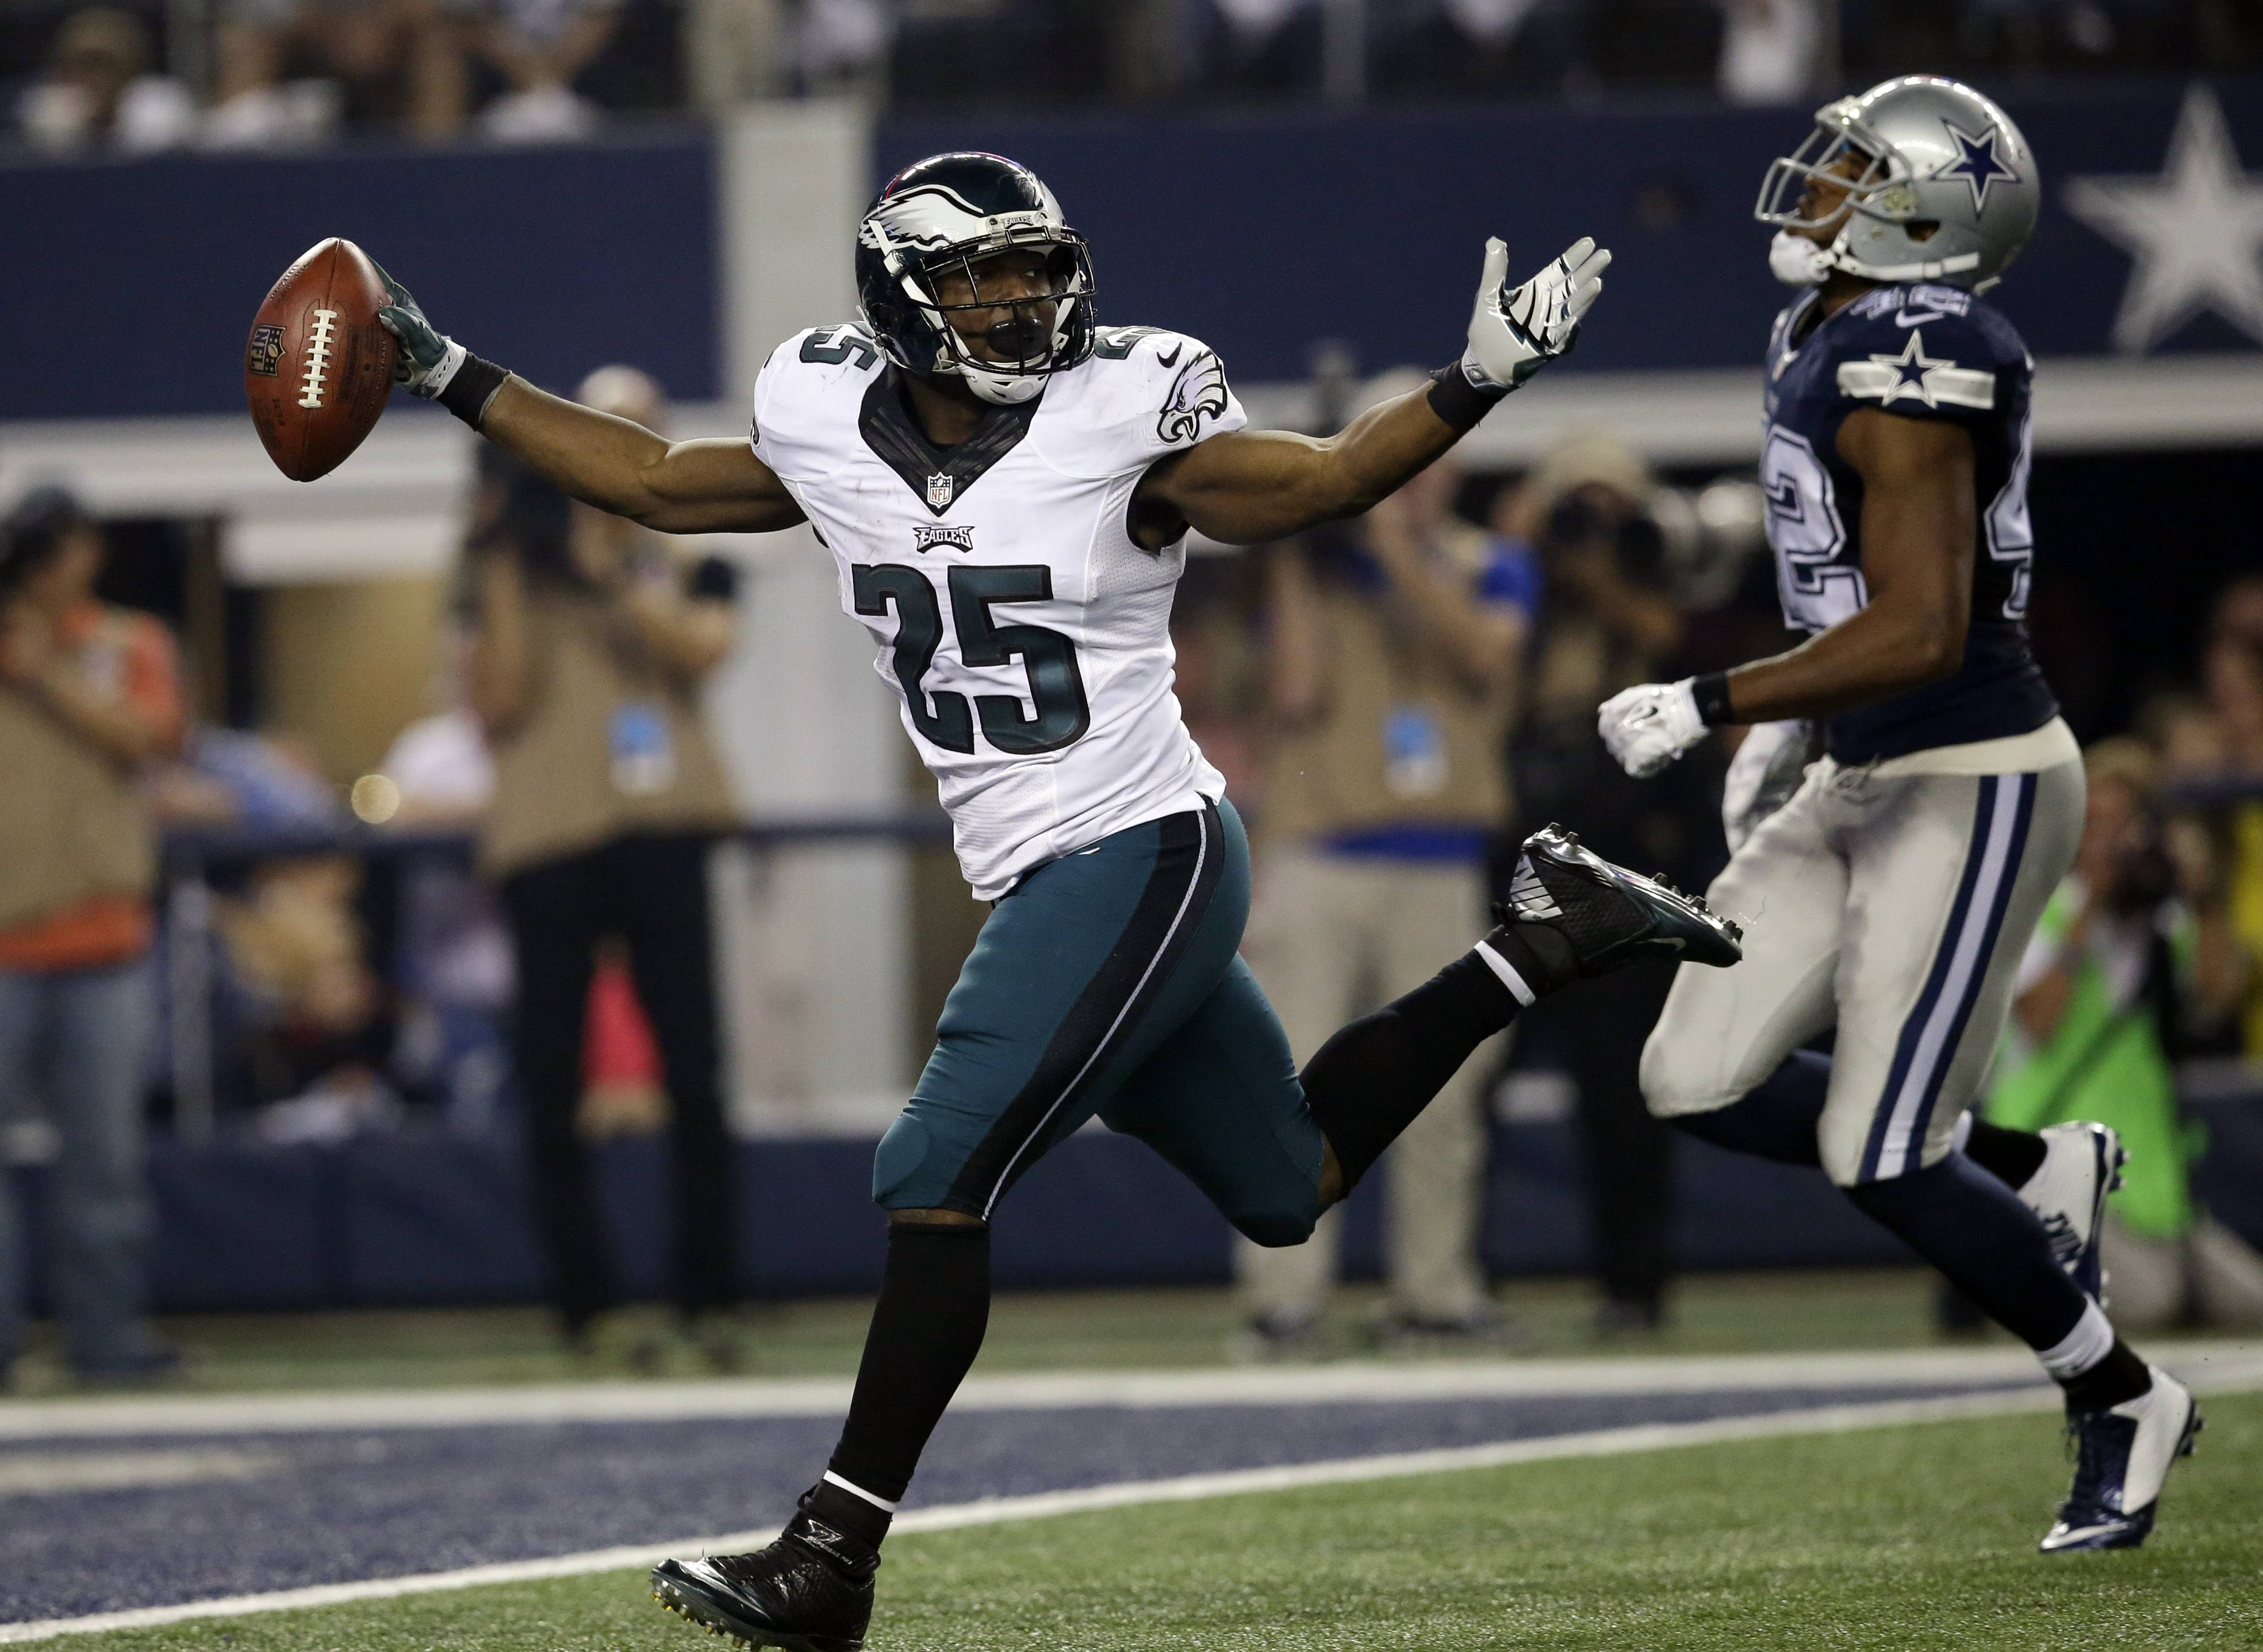 Philadelphia Eagles' LeSean McCoy (25) celebrates in front of Dallas Cowboys' Barry Church (42) as he sprints into the end zone for a touchdown during the second half of an NFL football game, Thursday, Nov. 27, 2014, in Arlington, Texas.